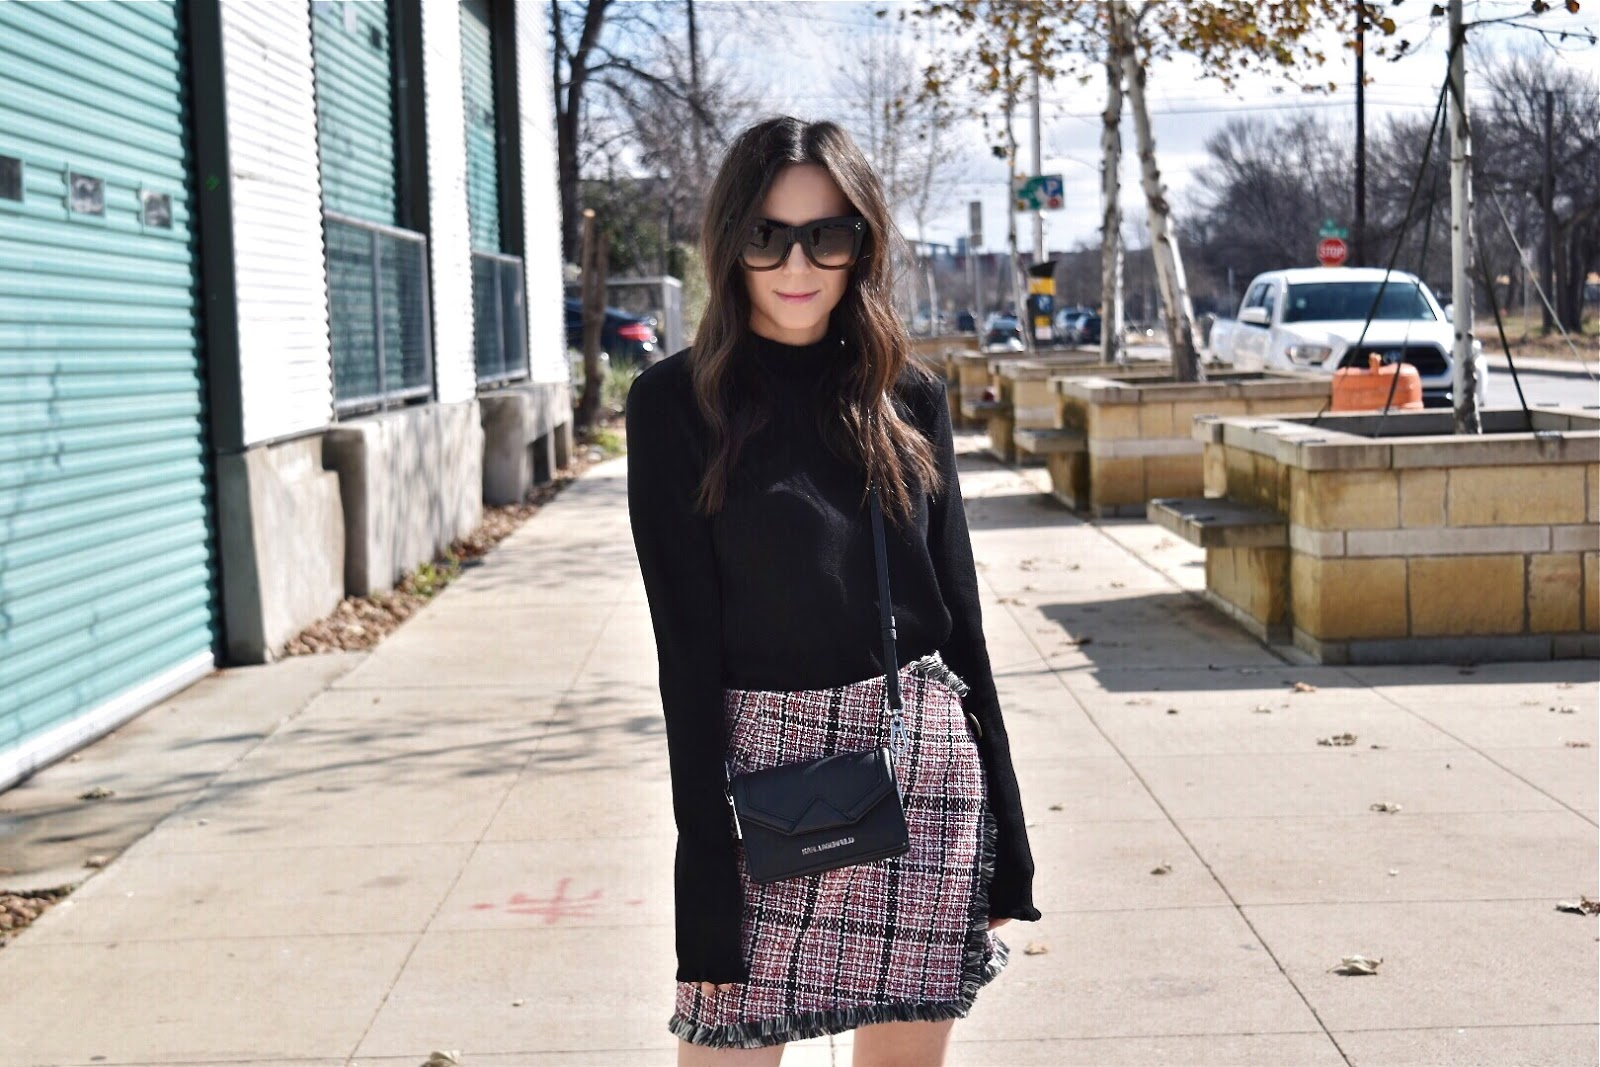 Outfit under $100